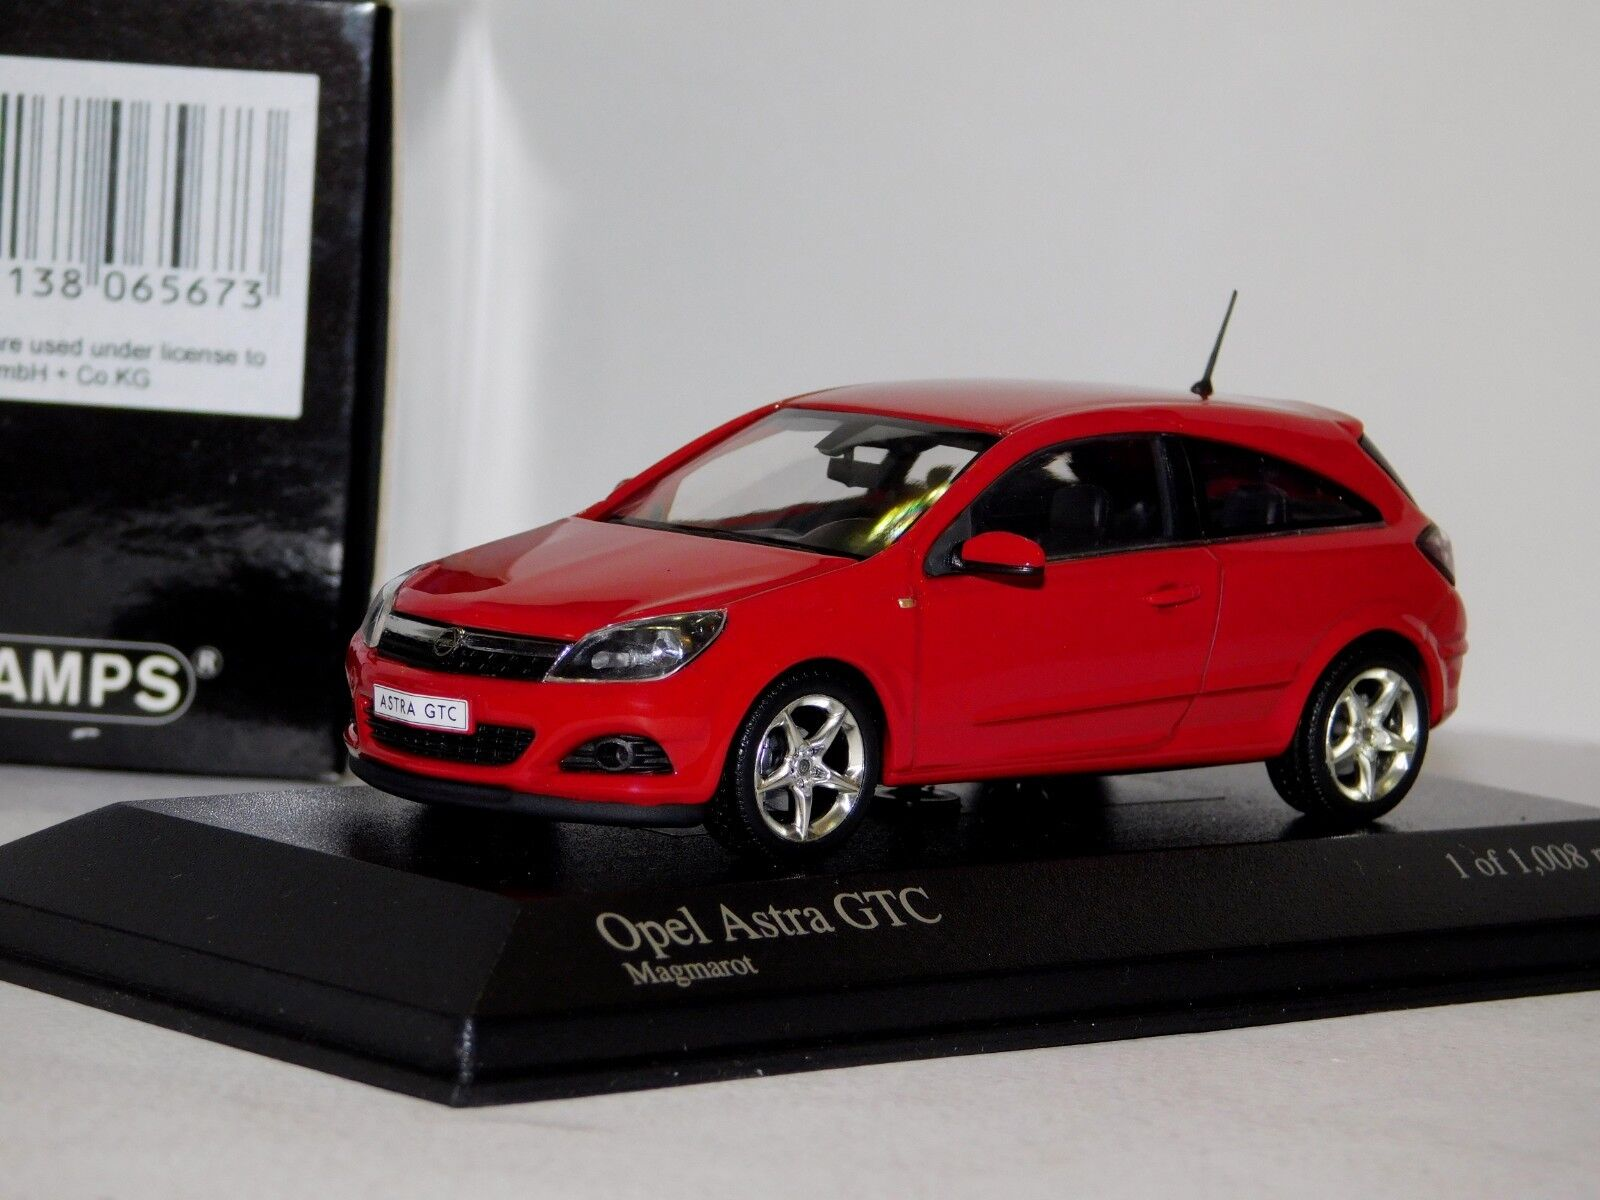 OPEL ASTRA GTC 2005 MAGMAred   RED MINICHAMPS 400043021 1 43